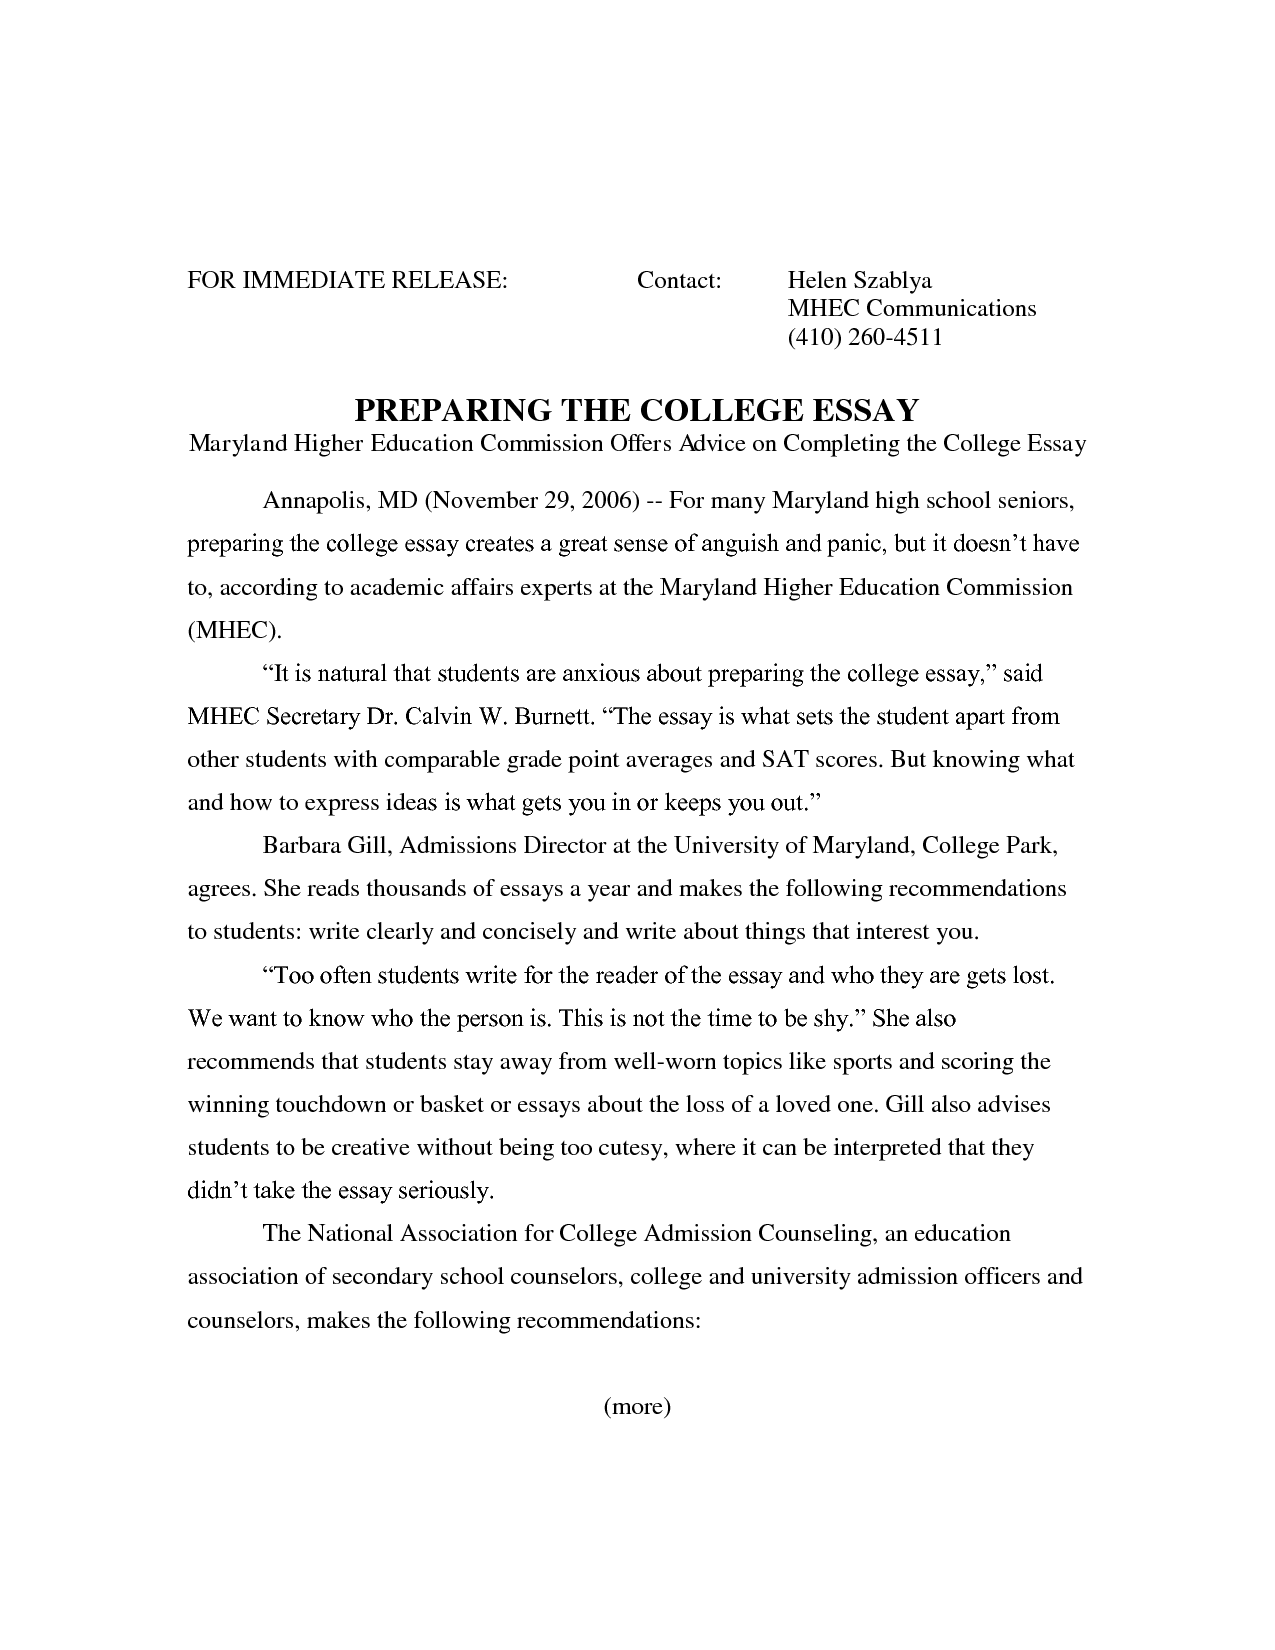 thesis statements for persuasive essays a modest proposal essay  how to write a fantastic awesome college admission essay thesis how to write a fantastic awesome